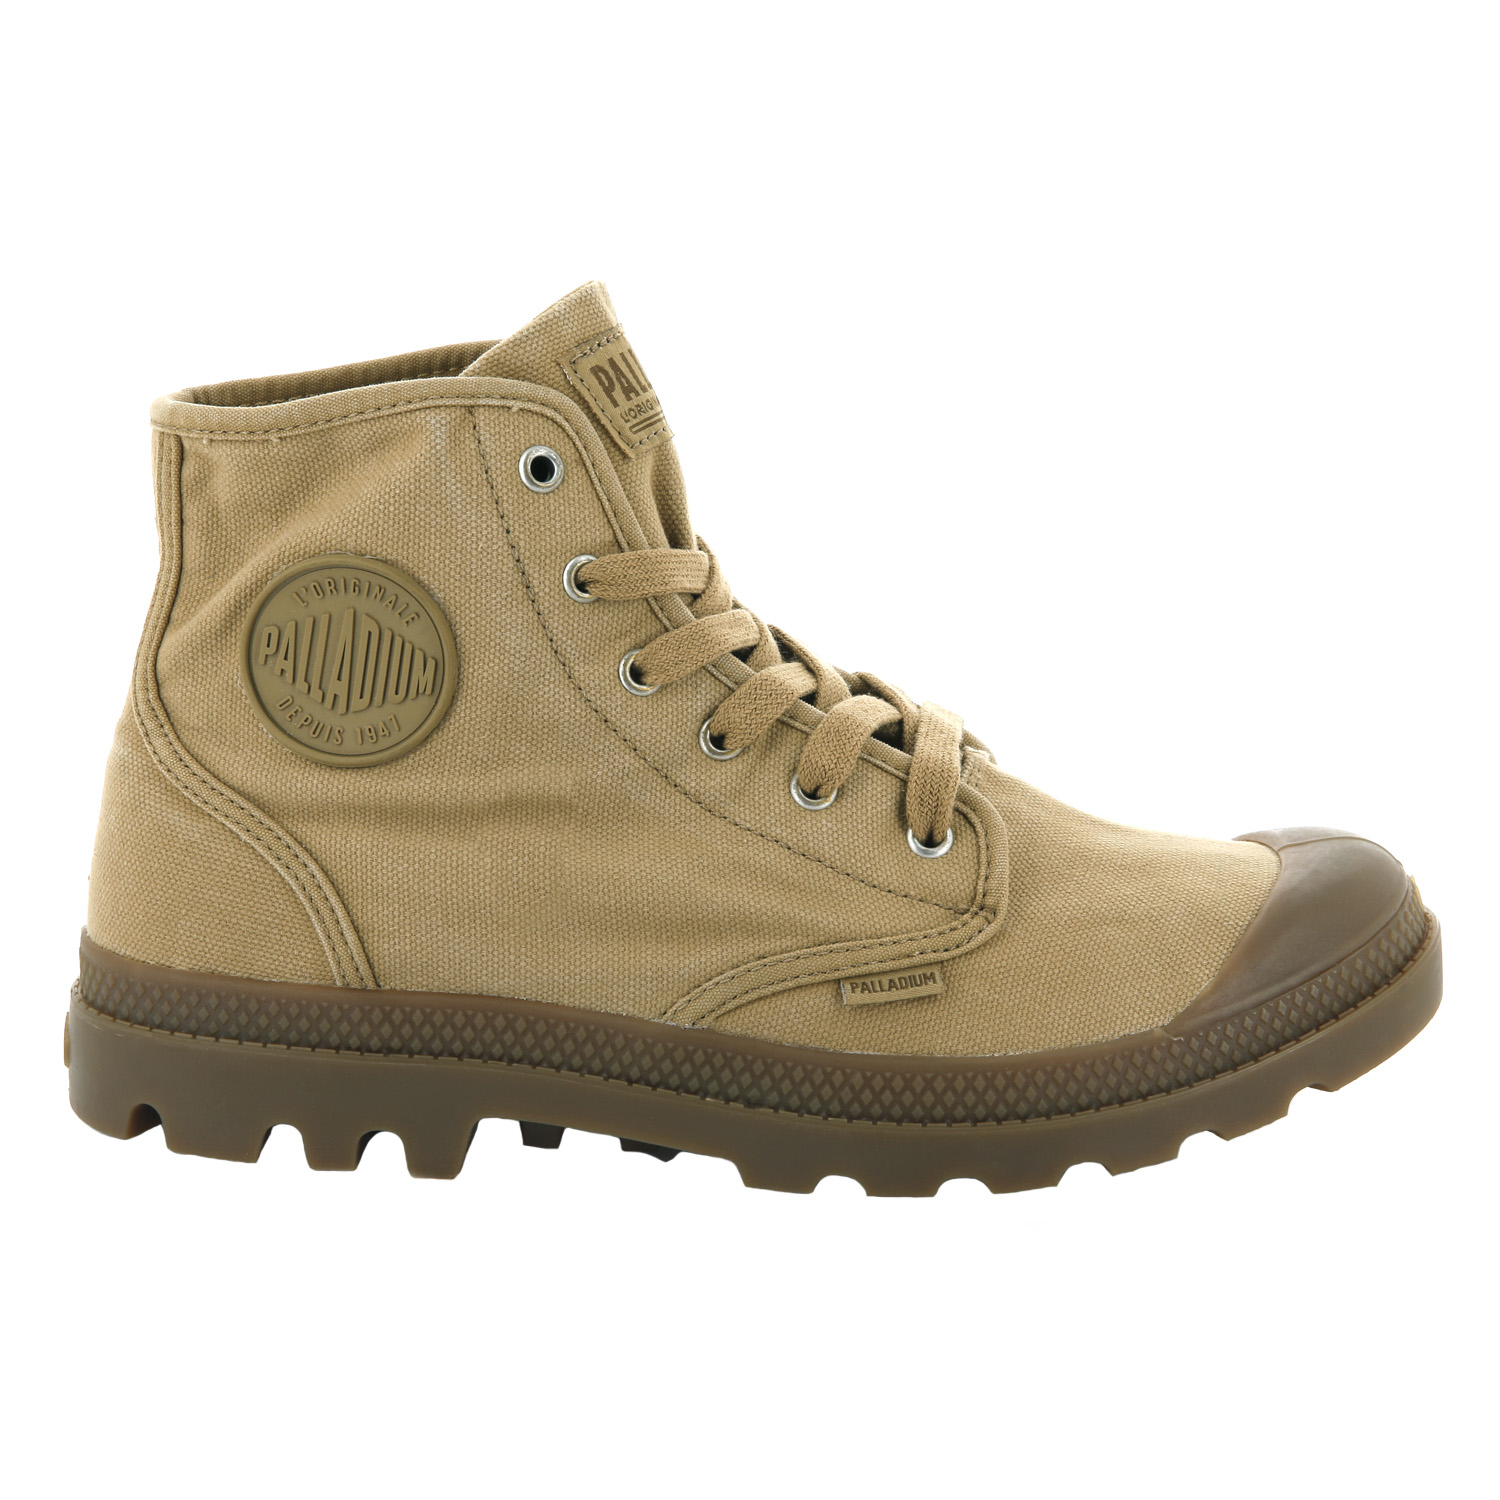 Palladium-Mens-Pampa-Hi-Canvas-Shoes-Casual-Walking-High-Top-Lace-Up-Ankle-Boots thumbnail 48